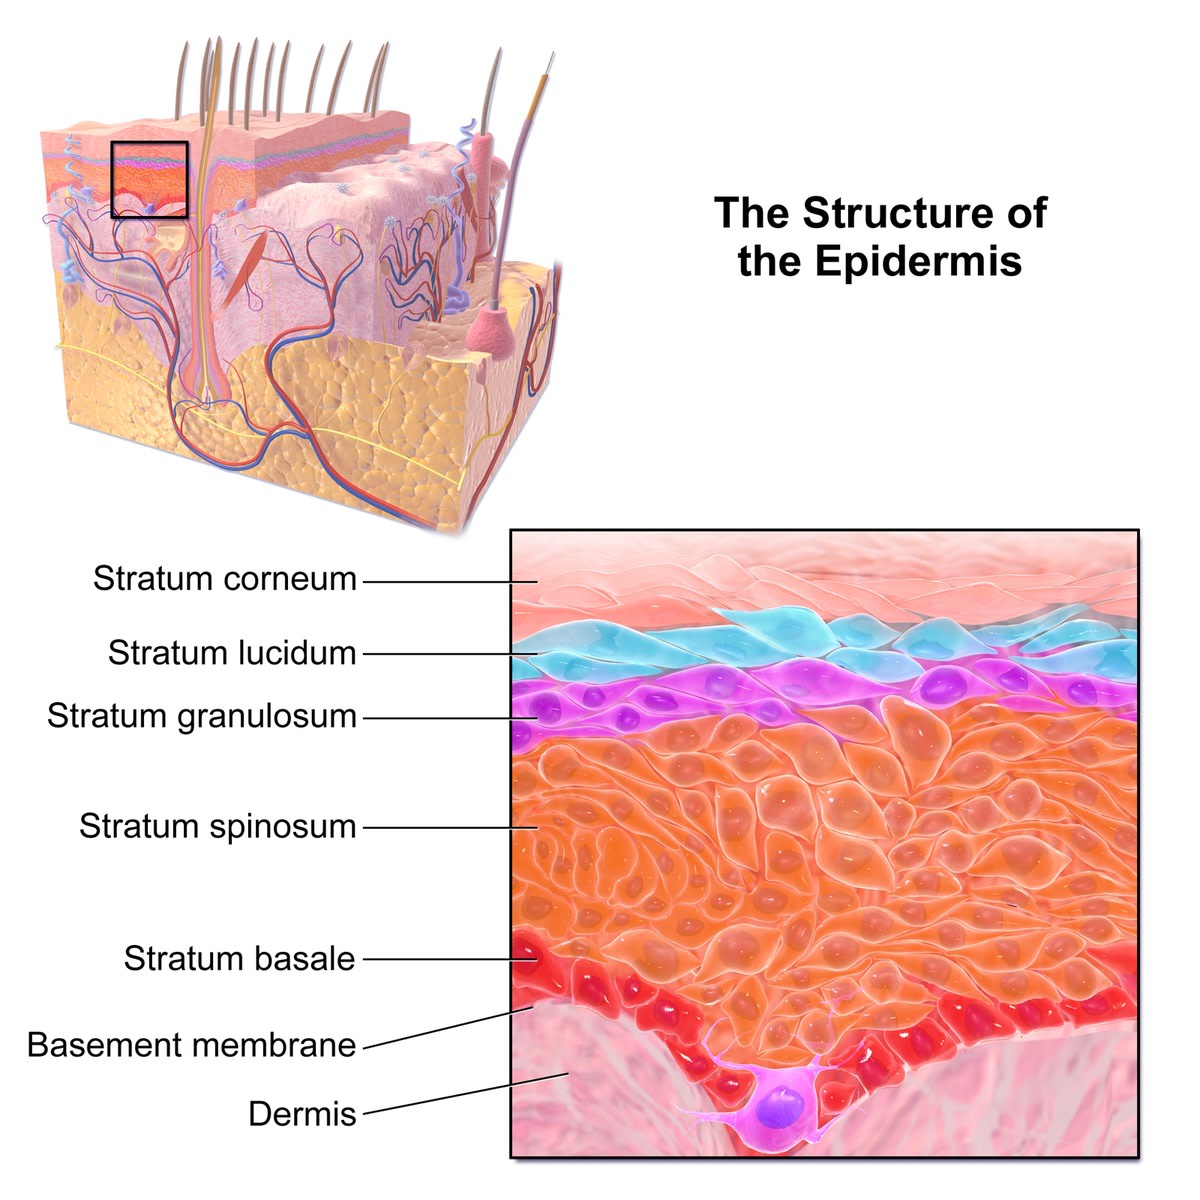 Skin is made of an outer epidermis and an inner dermis. The epidermis consists of five layers. The stratum corneum is the outermost layer.